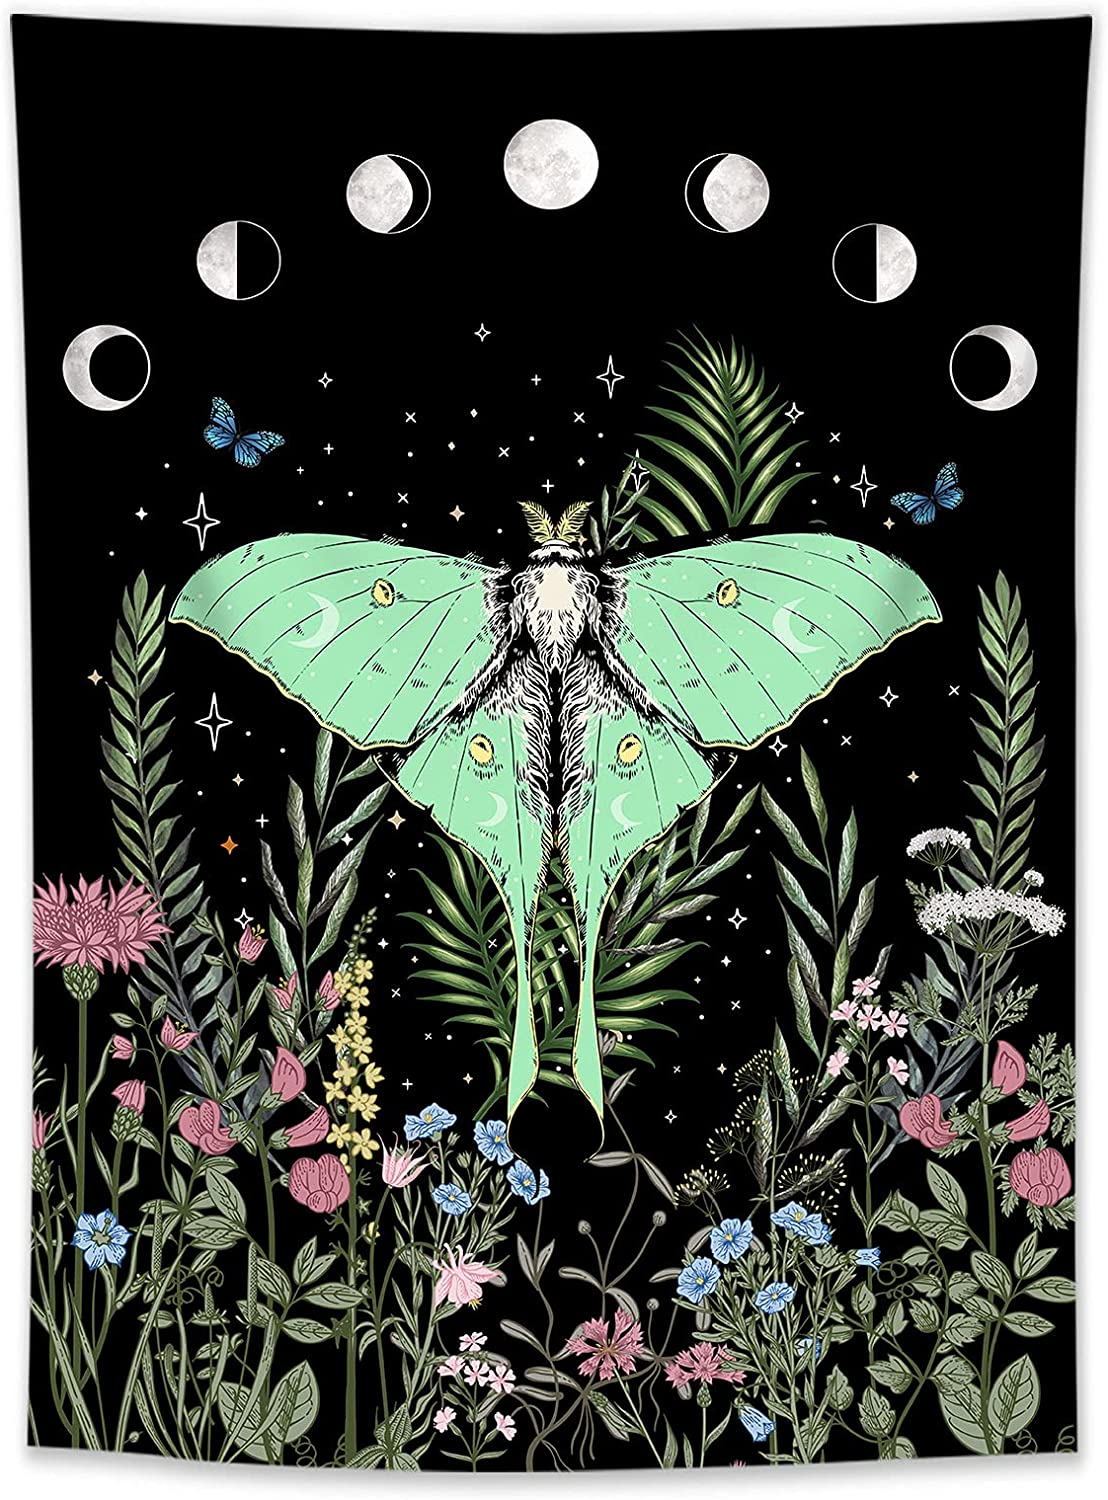 LB Trippy Floral Moon Phase Tapestry Butterfly Moth Tapestry Black Witchy Moonlit Garden Flower Tapestry Wall Hanging for Bedroom Living Room College Dorm Home Decor Vertical Aesthetic, 40x60 inch